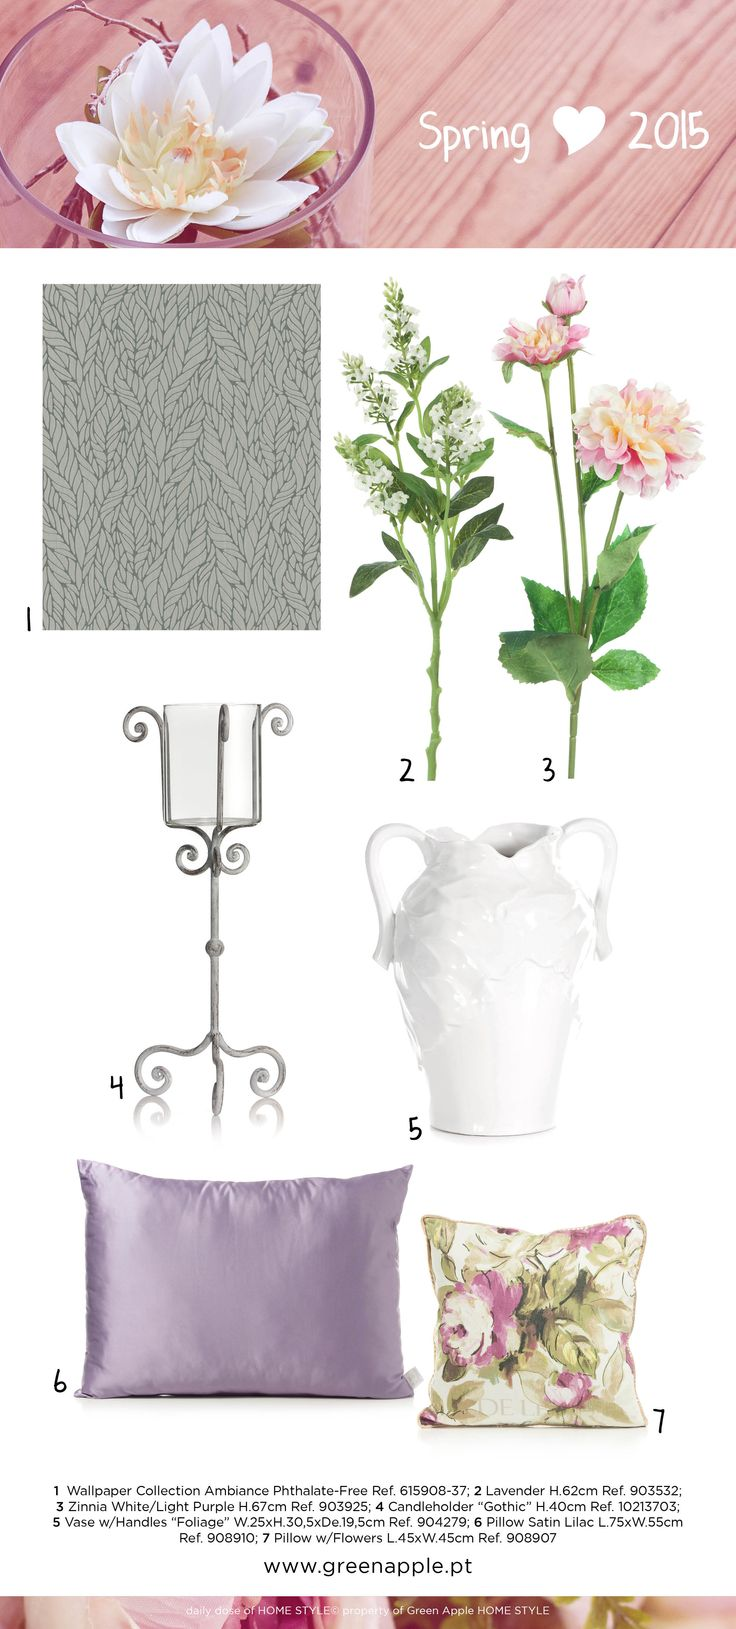 Green Apple HOME STYLE ♥ Spring 2015 #InspiringCollections #InteriorDecoration #Furniture #Portugal #Spring #Pillows #FauxFlowers #Wallpaper #DecorativeVase #CandleHolder